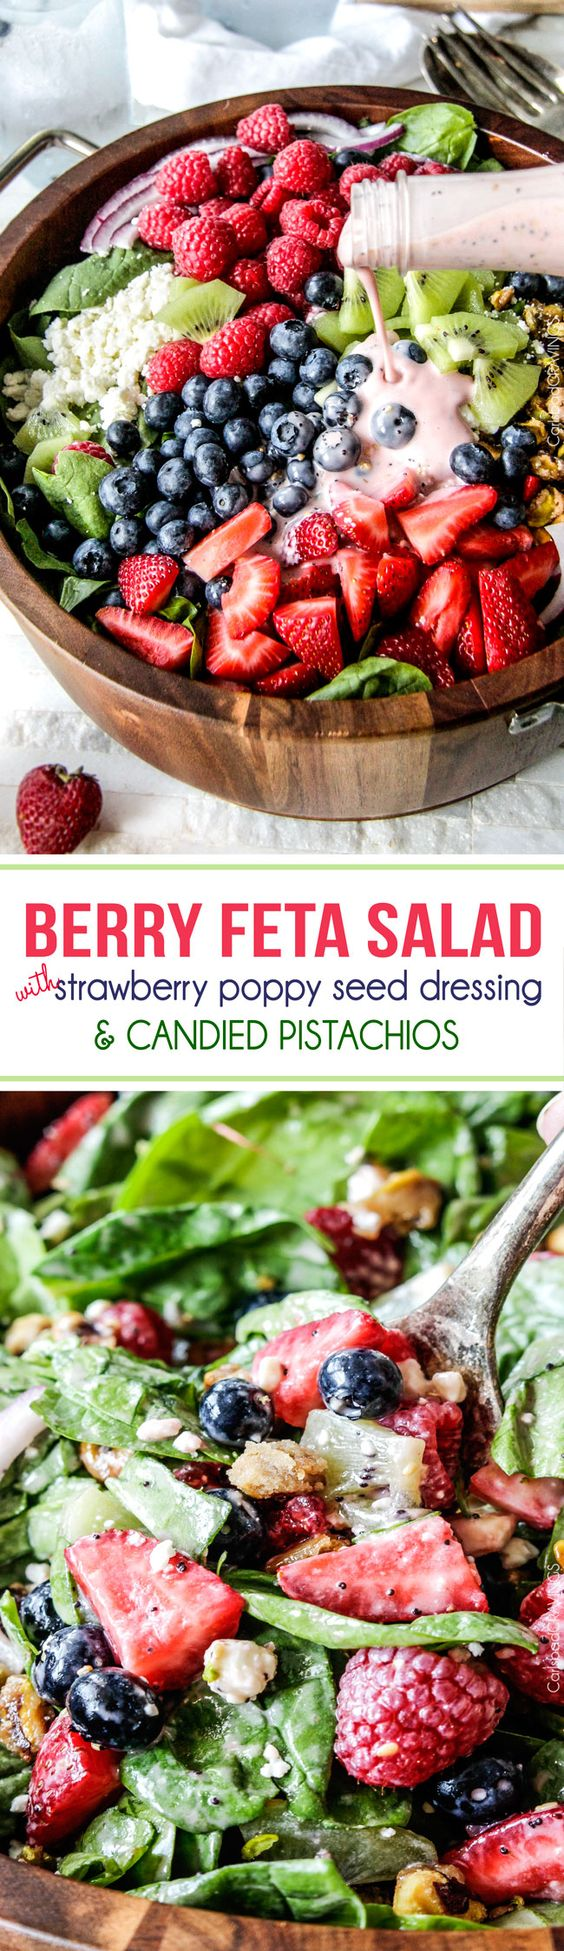 Most Pinned Salad Recipe on Pinterest 77